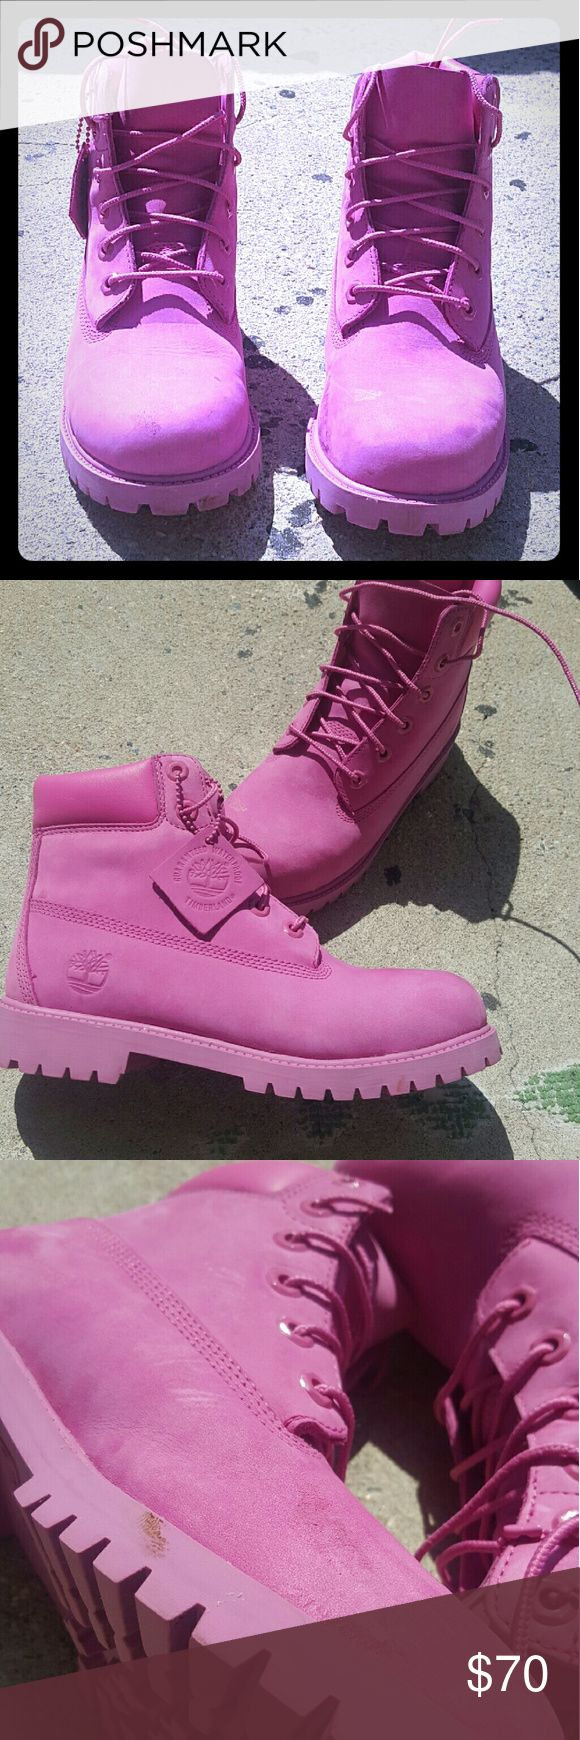 Timberland Boots All pink Timberland Boots, USED, 8/10 Condition Timberland Shoes Boots